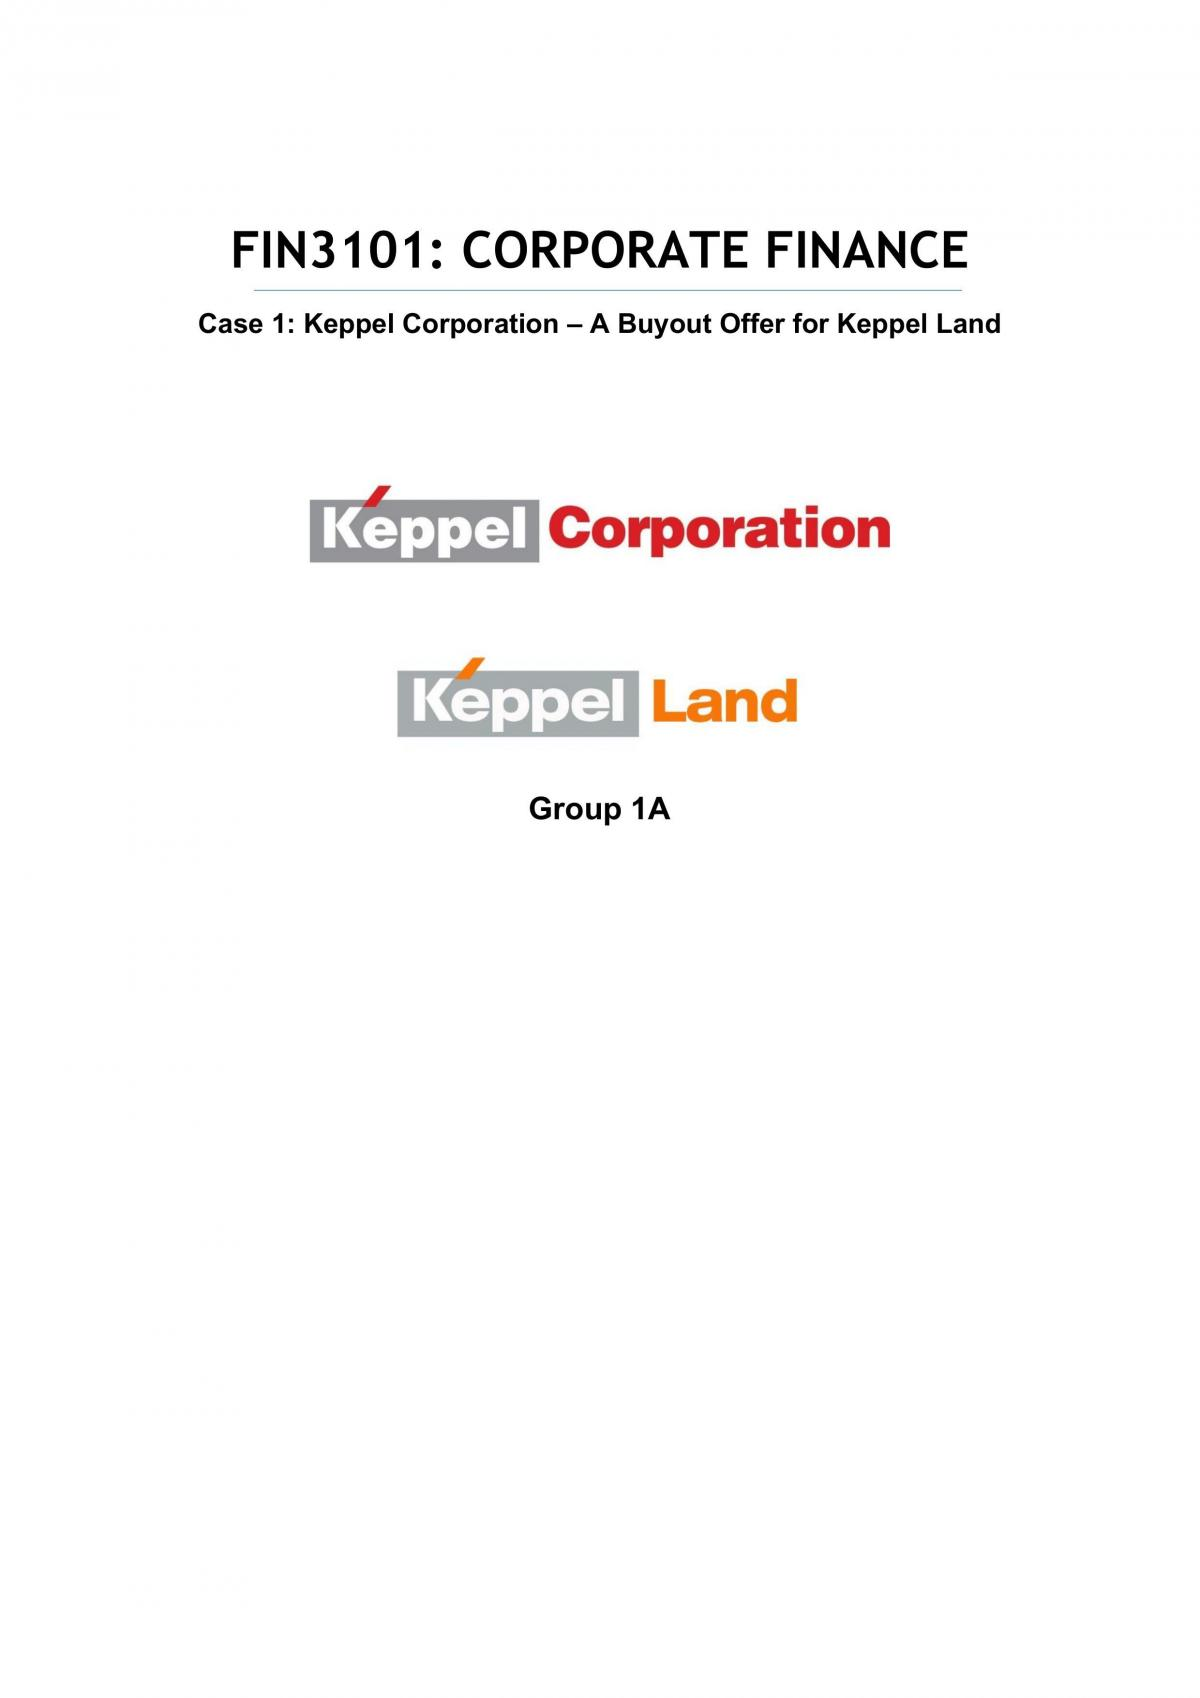 FIN3101 Corporate Finance Case Project Report: Keppel  - Page 1